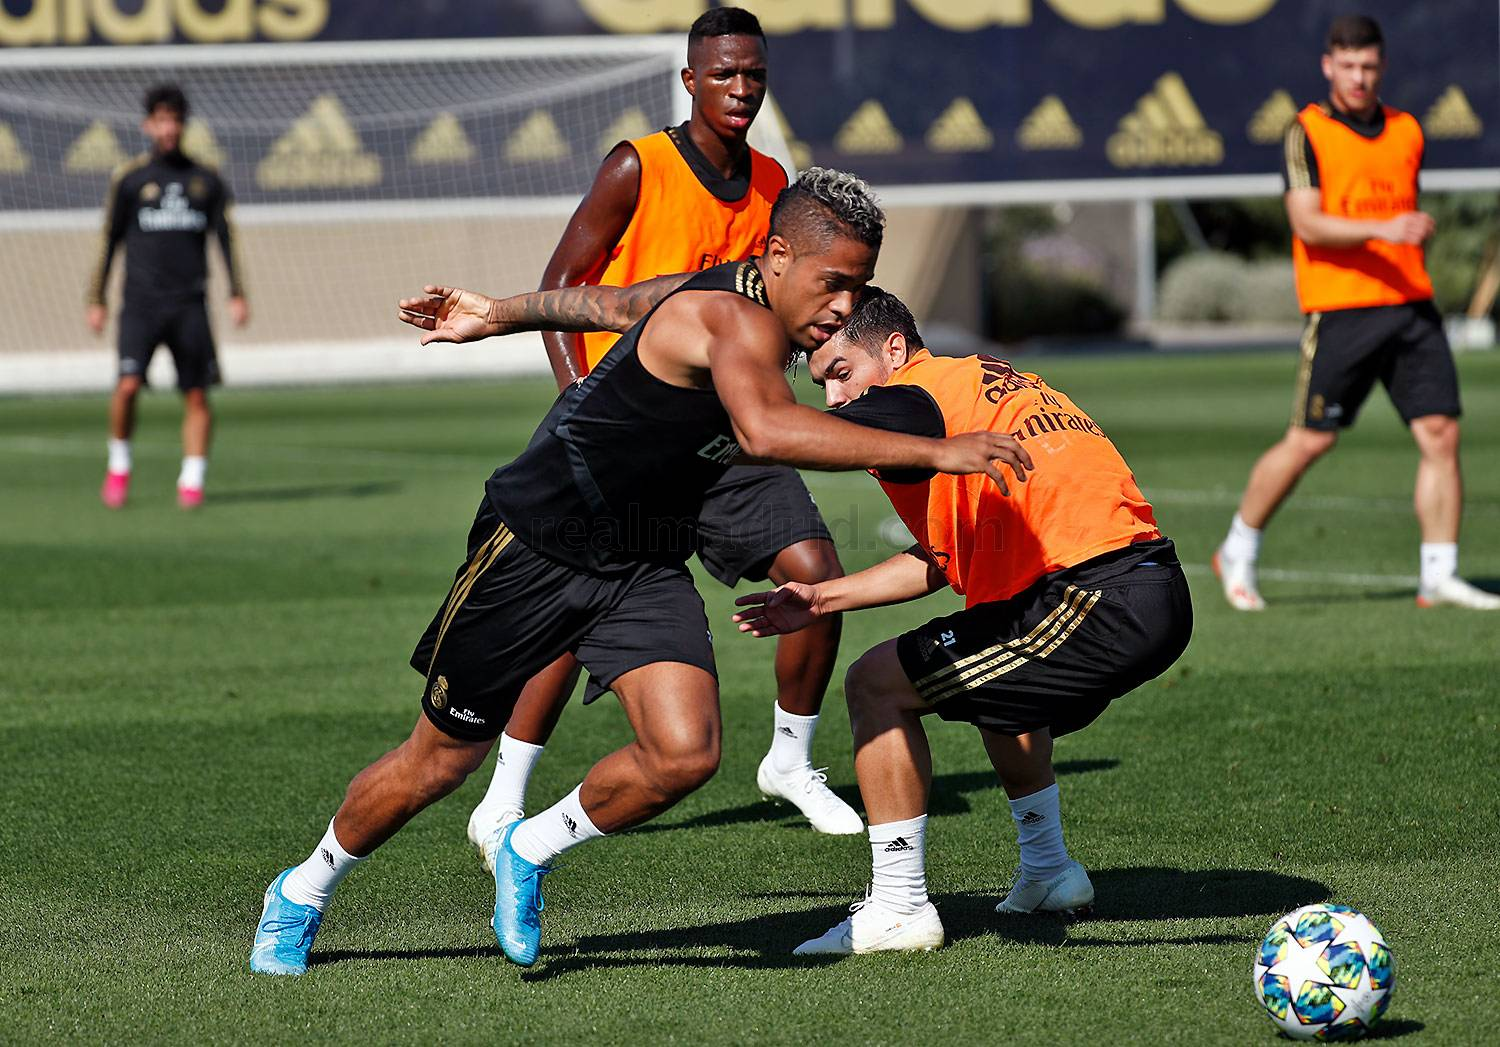 Real Madrid - Entrenamiento del Real Madrid  - 29-09-2019